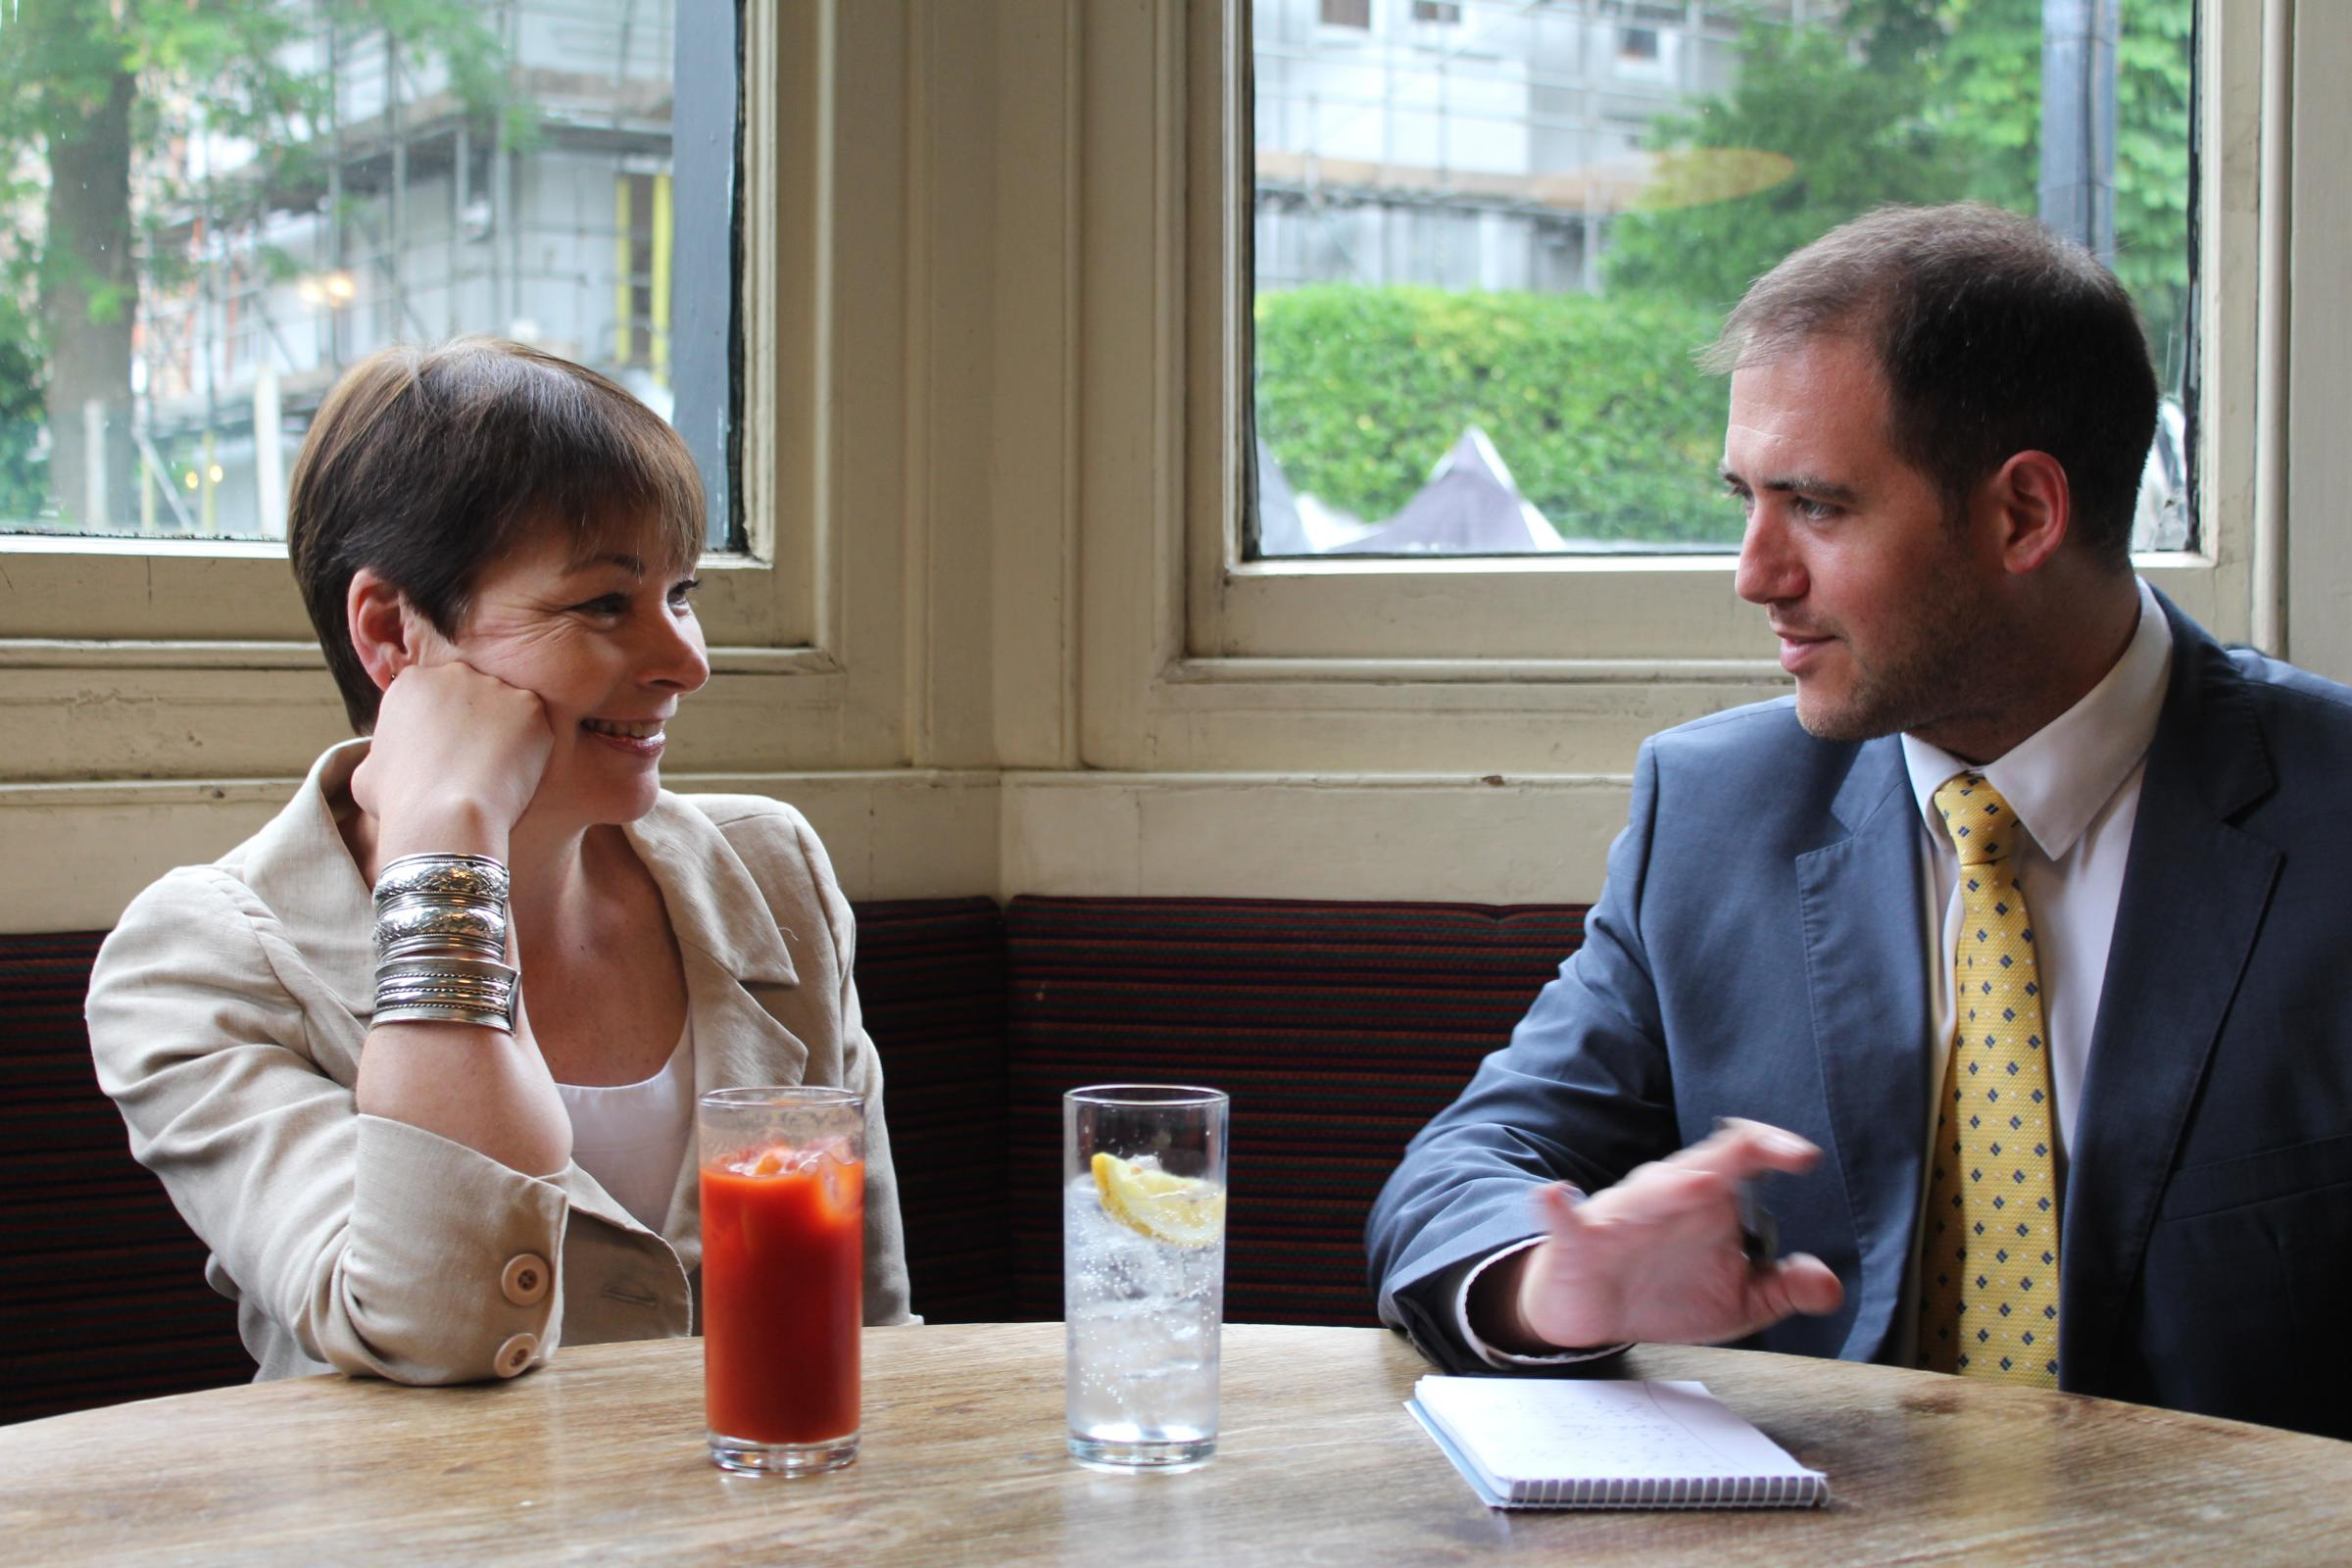 Caroline Lucas sat down with Argus reporter Joel Adams to discuss the future of the Green Party